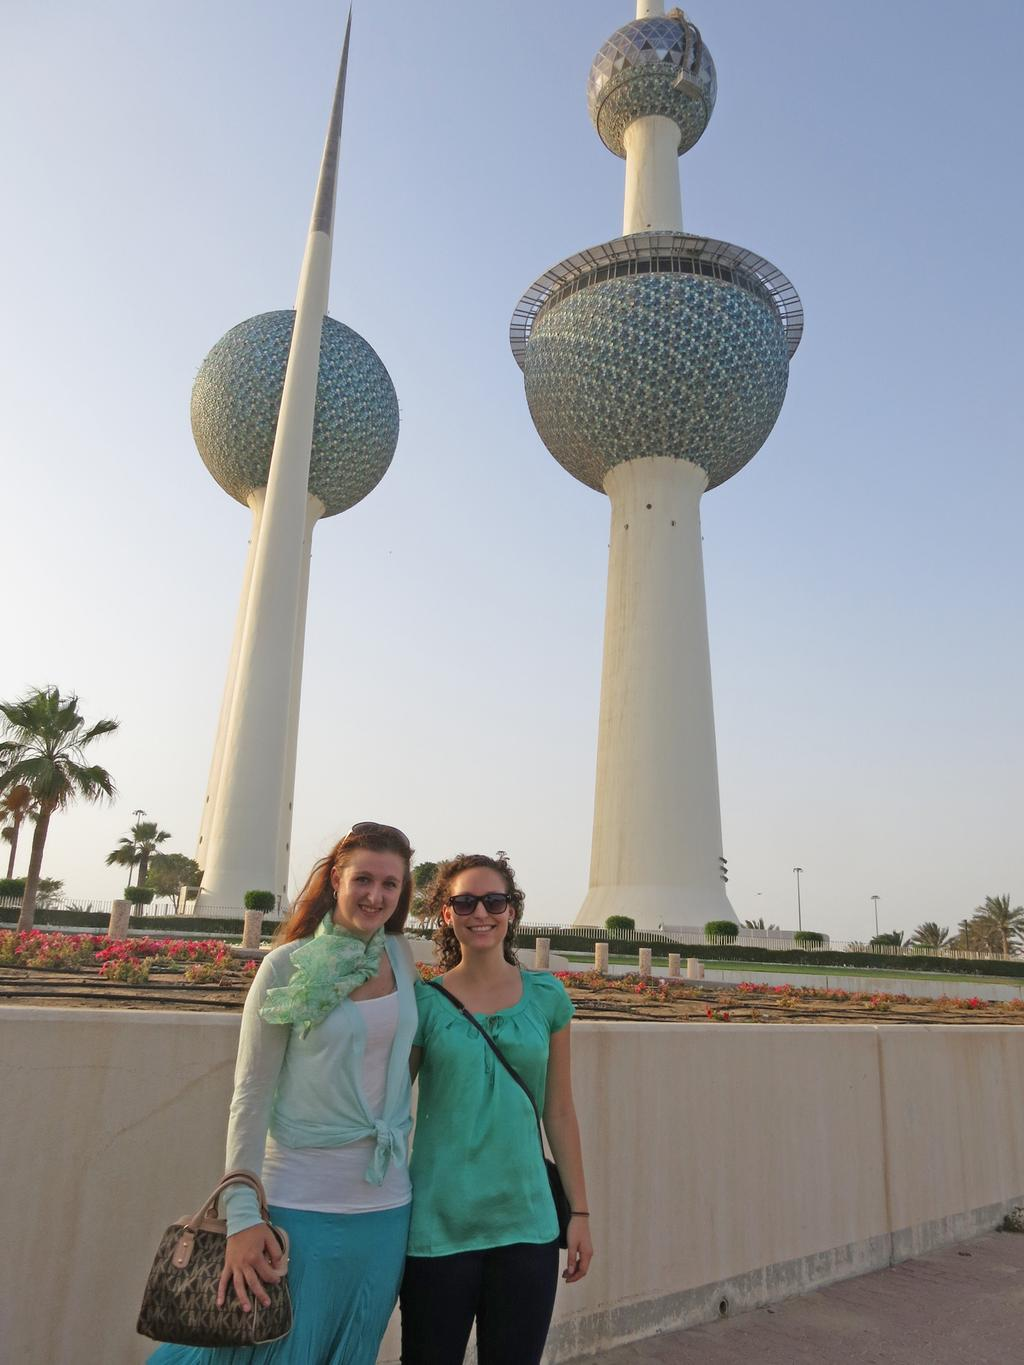 My experience in Kuwait was greatly enhanced by her presence, so I have to thank her for it here. We made a great team! Emily and me during an afternoon walk to Kuwait Towers.